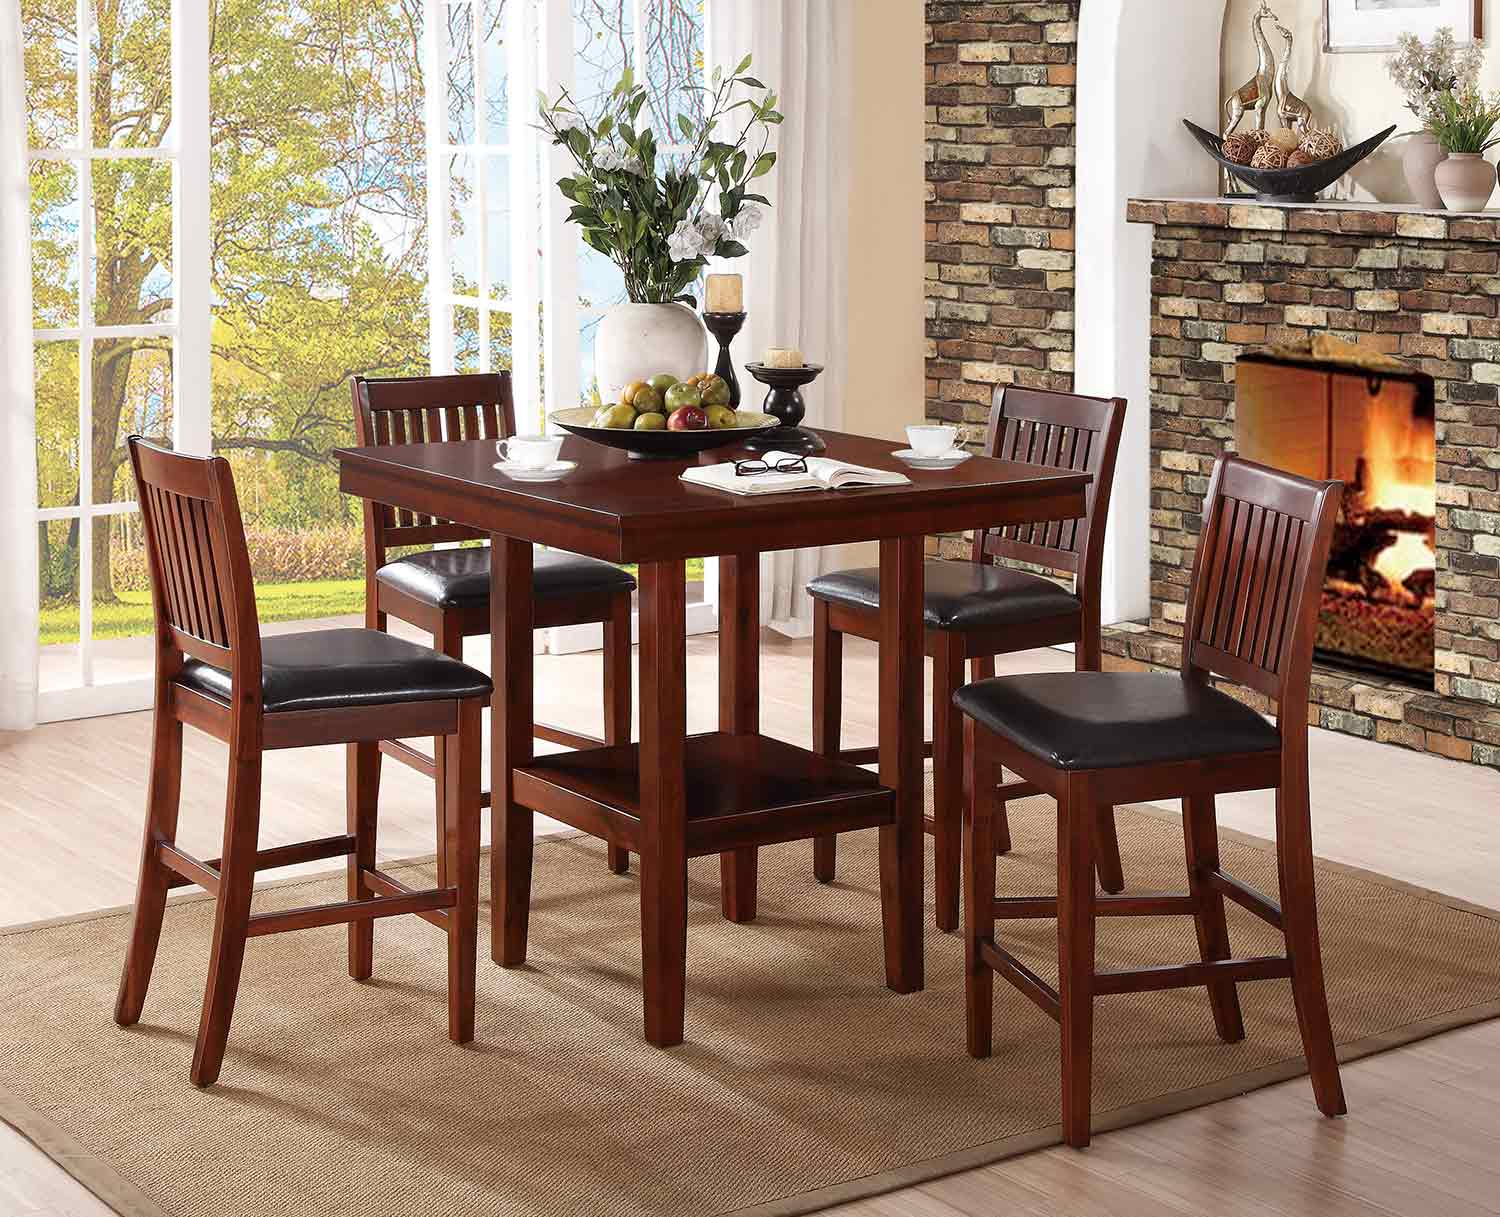 Homelegance Galena 5 Piece Pack Counter Height Dining Set   Warm Cherry